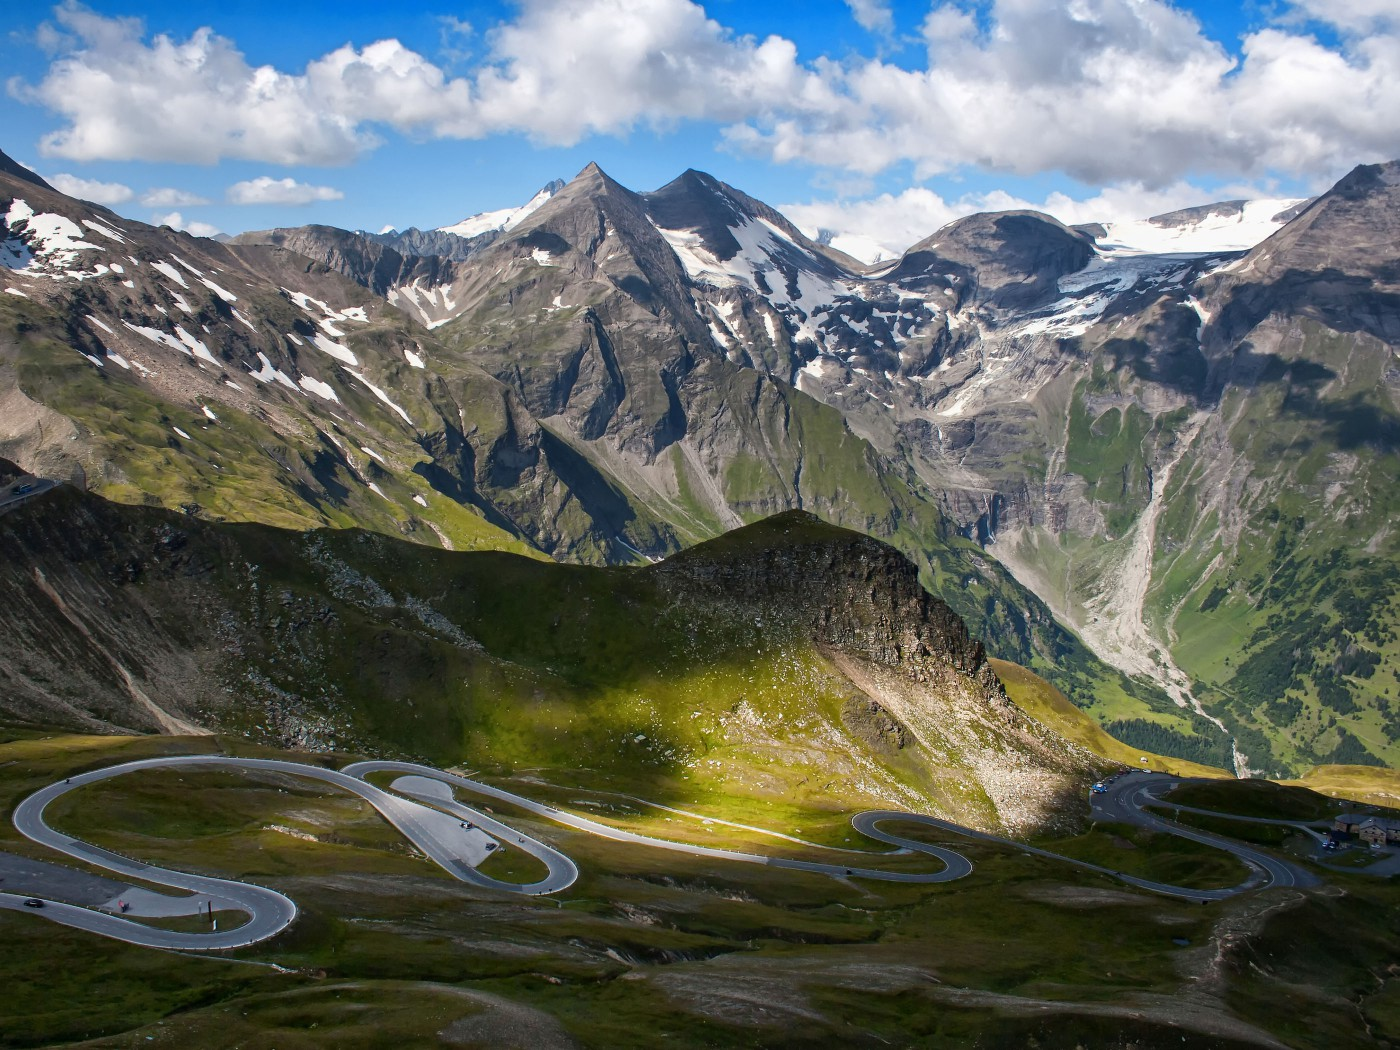 13) The Grossglockner High Alpine Road in Austria 1